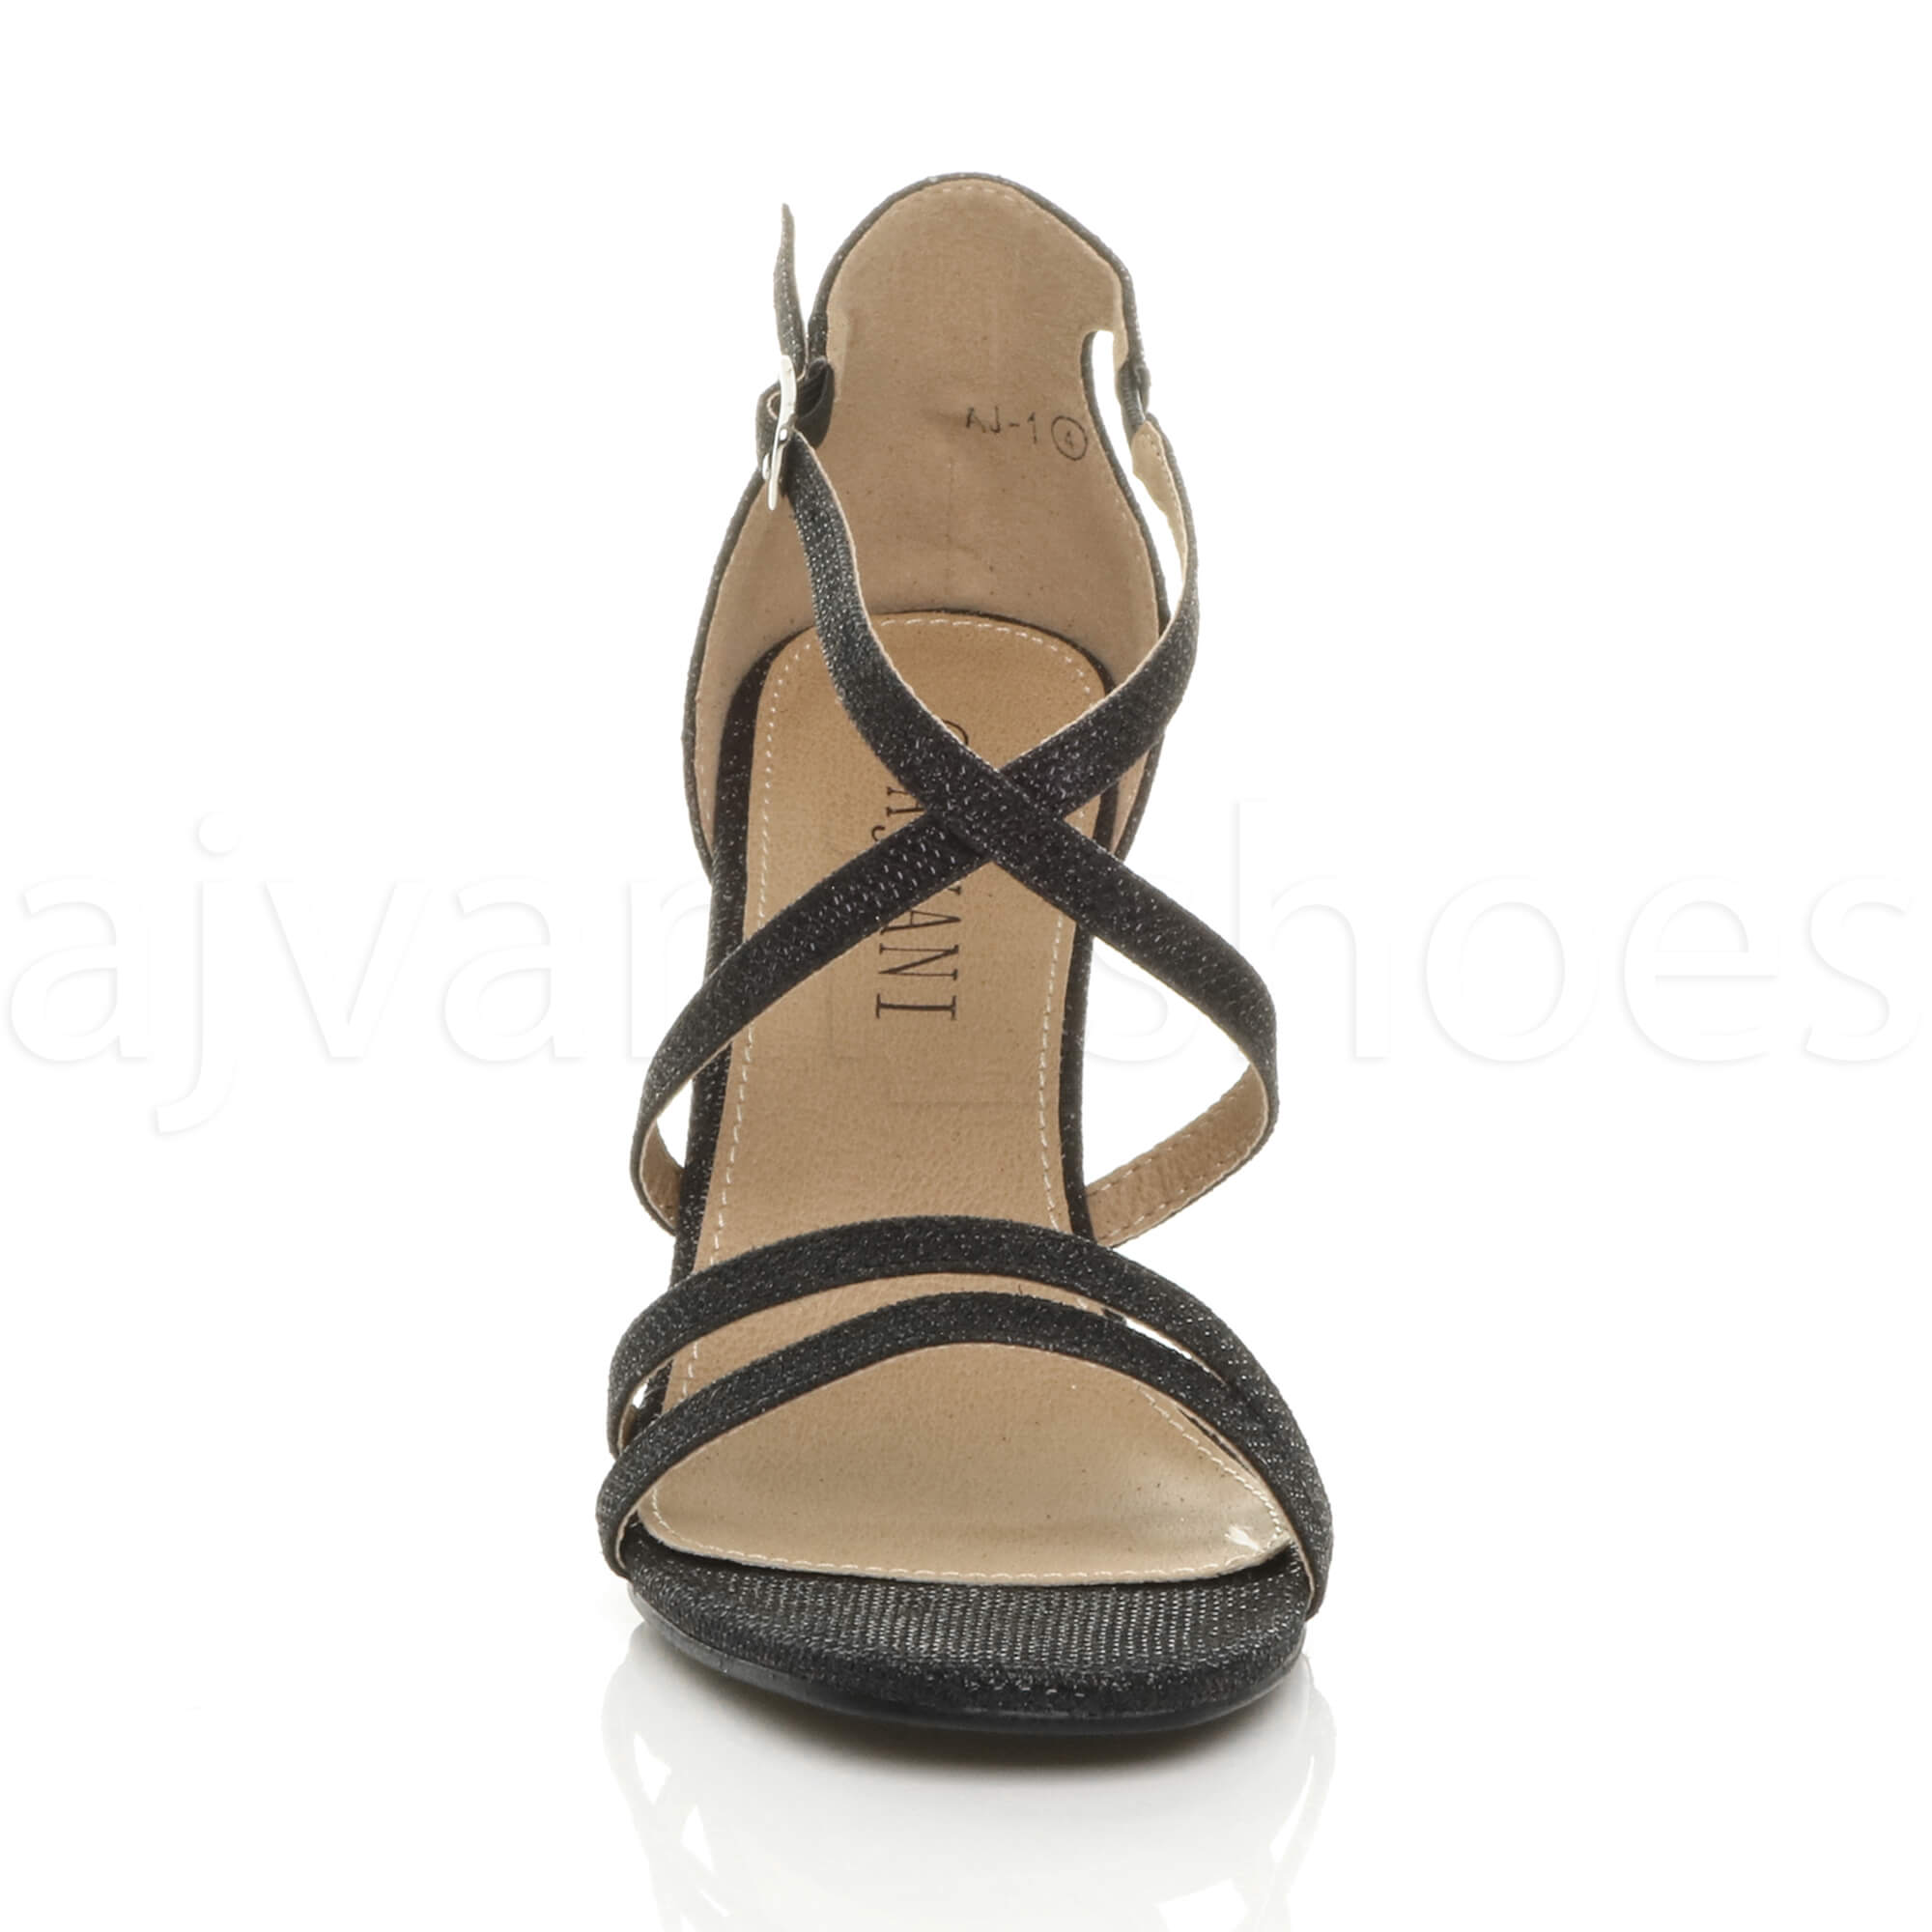 WOMENS-LADIES-MID-HIGH-HEEL-STRAPPY-CROSSOVER-WEDDING-PROM-SANDALS-SHOES-SIZE thumbnail 27